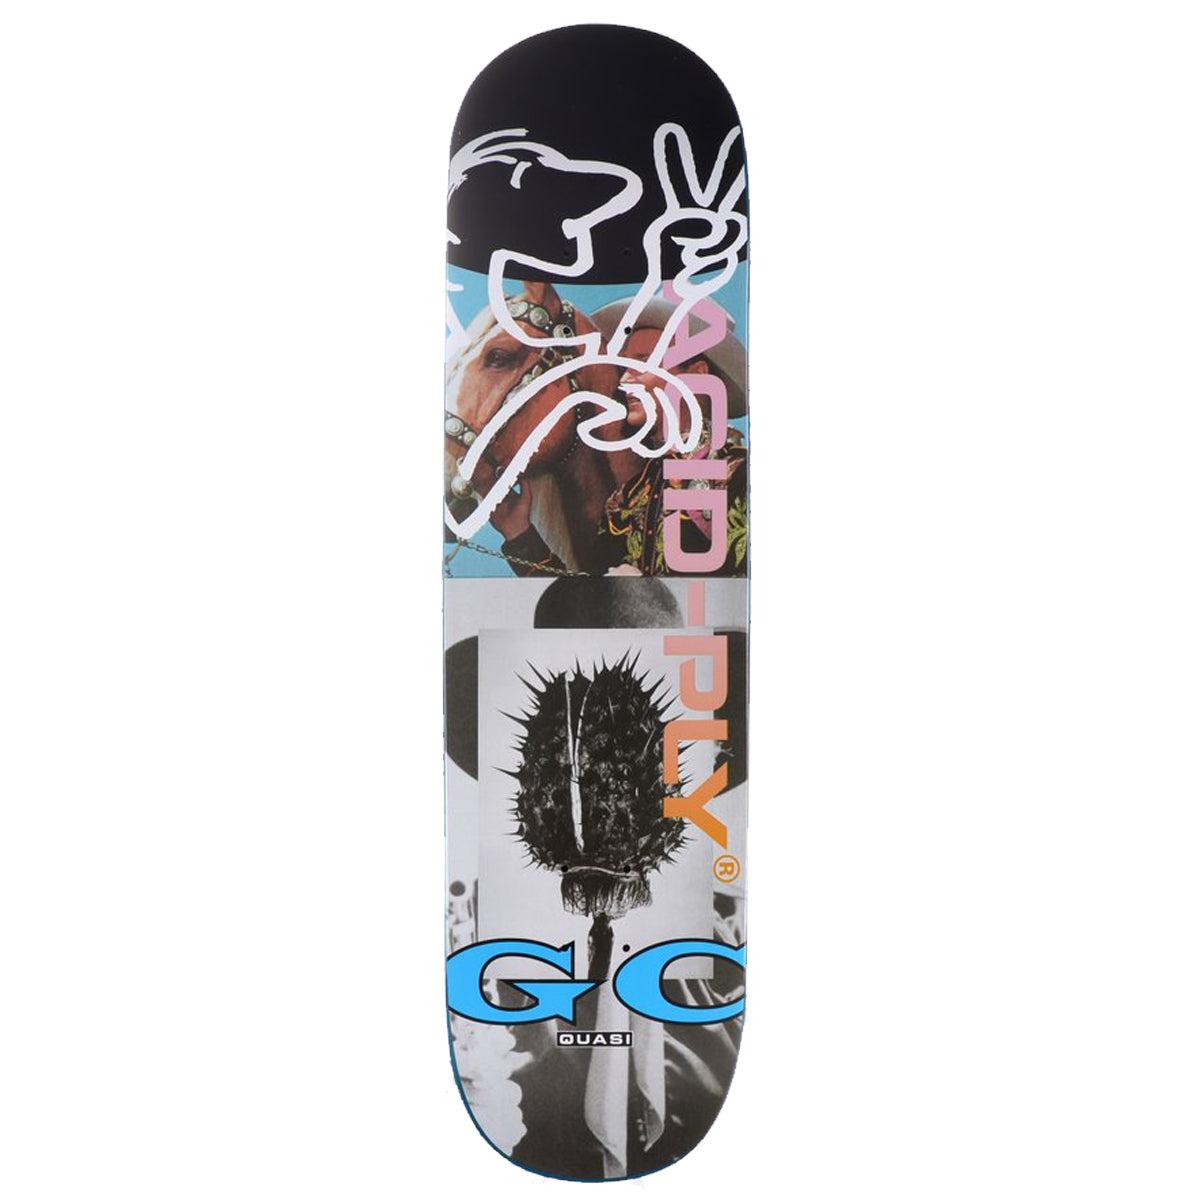 Quasi Deck - Gilbert Crocket Acid Ply - Blue | Underground Skate Shop